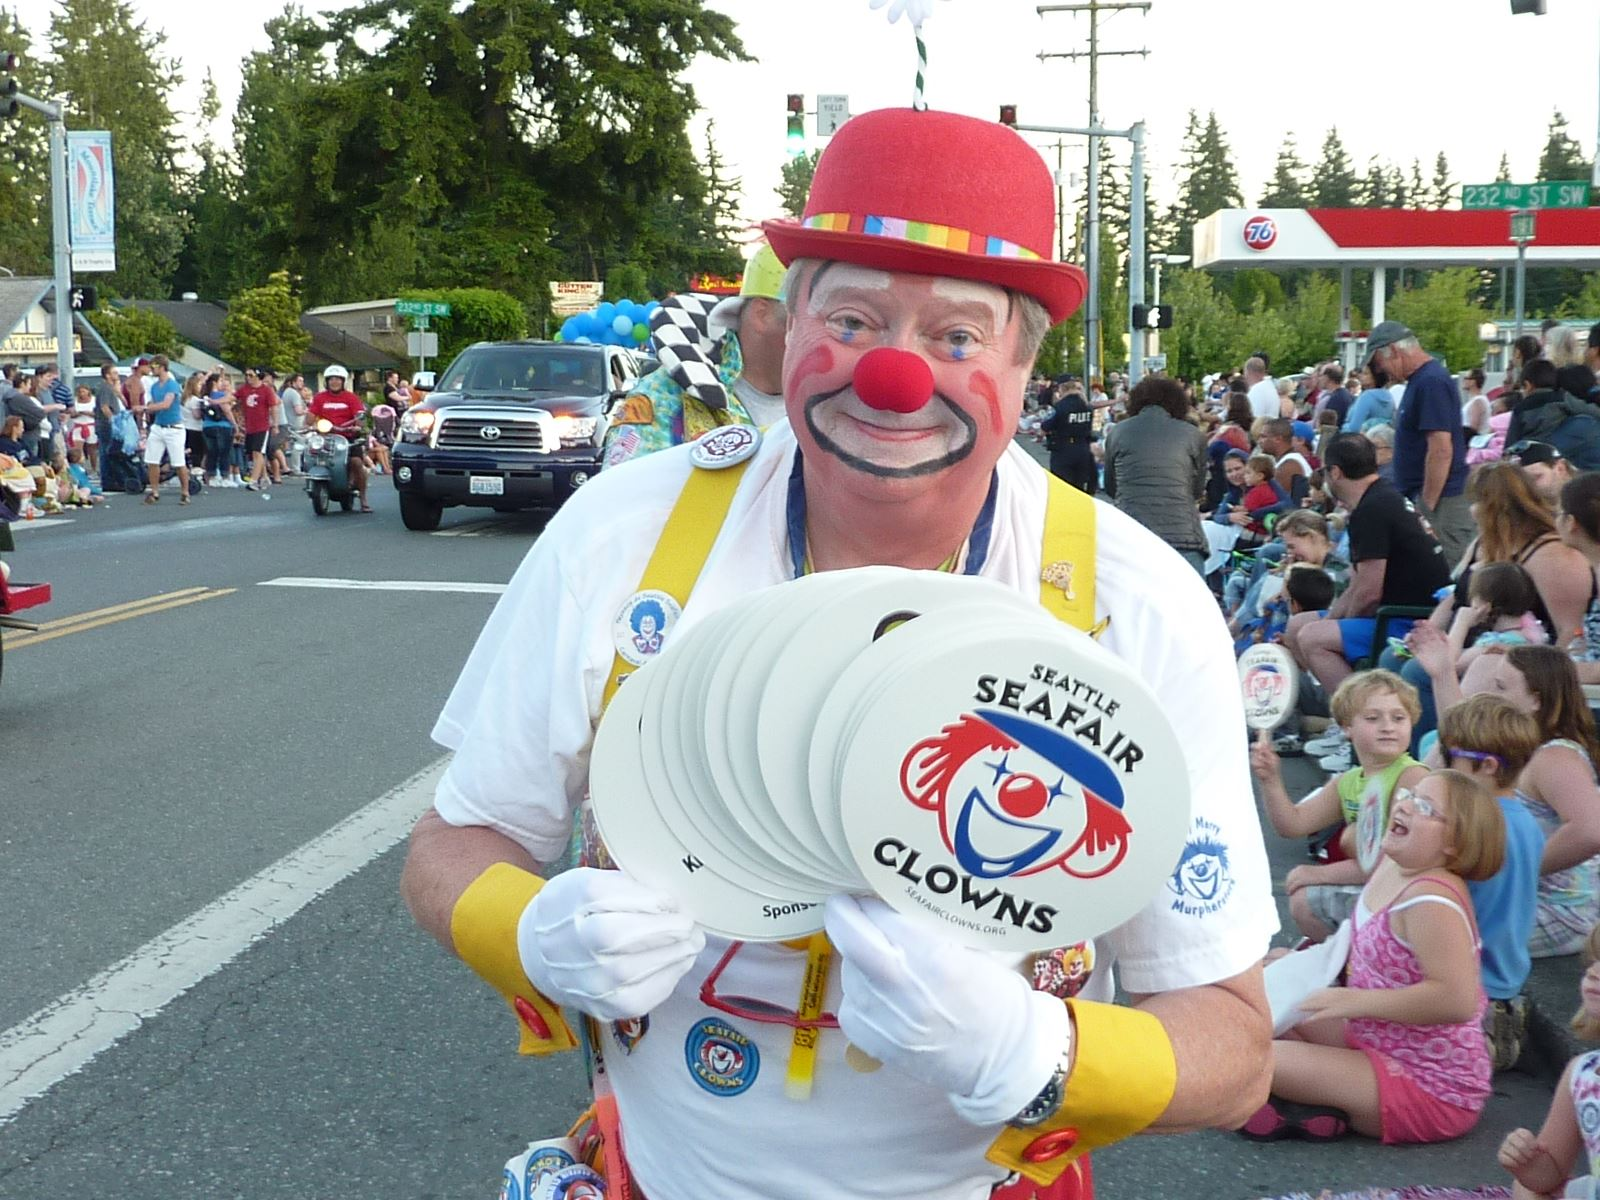 Tour de Terrace Parade - City of Mountlake Terrace